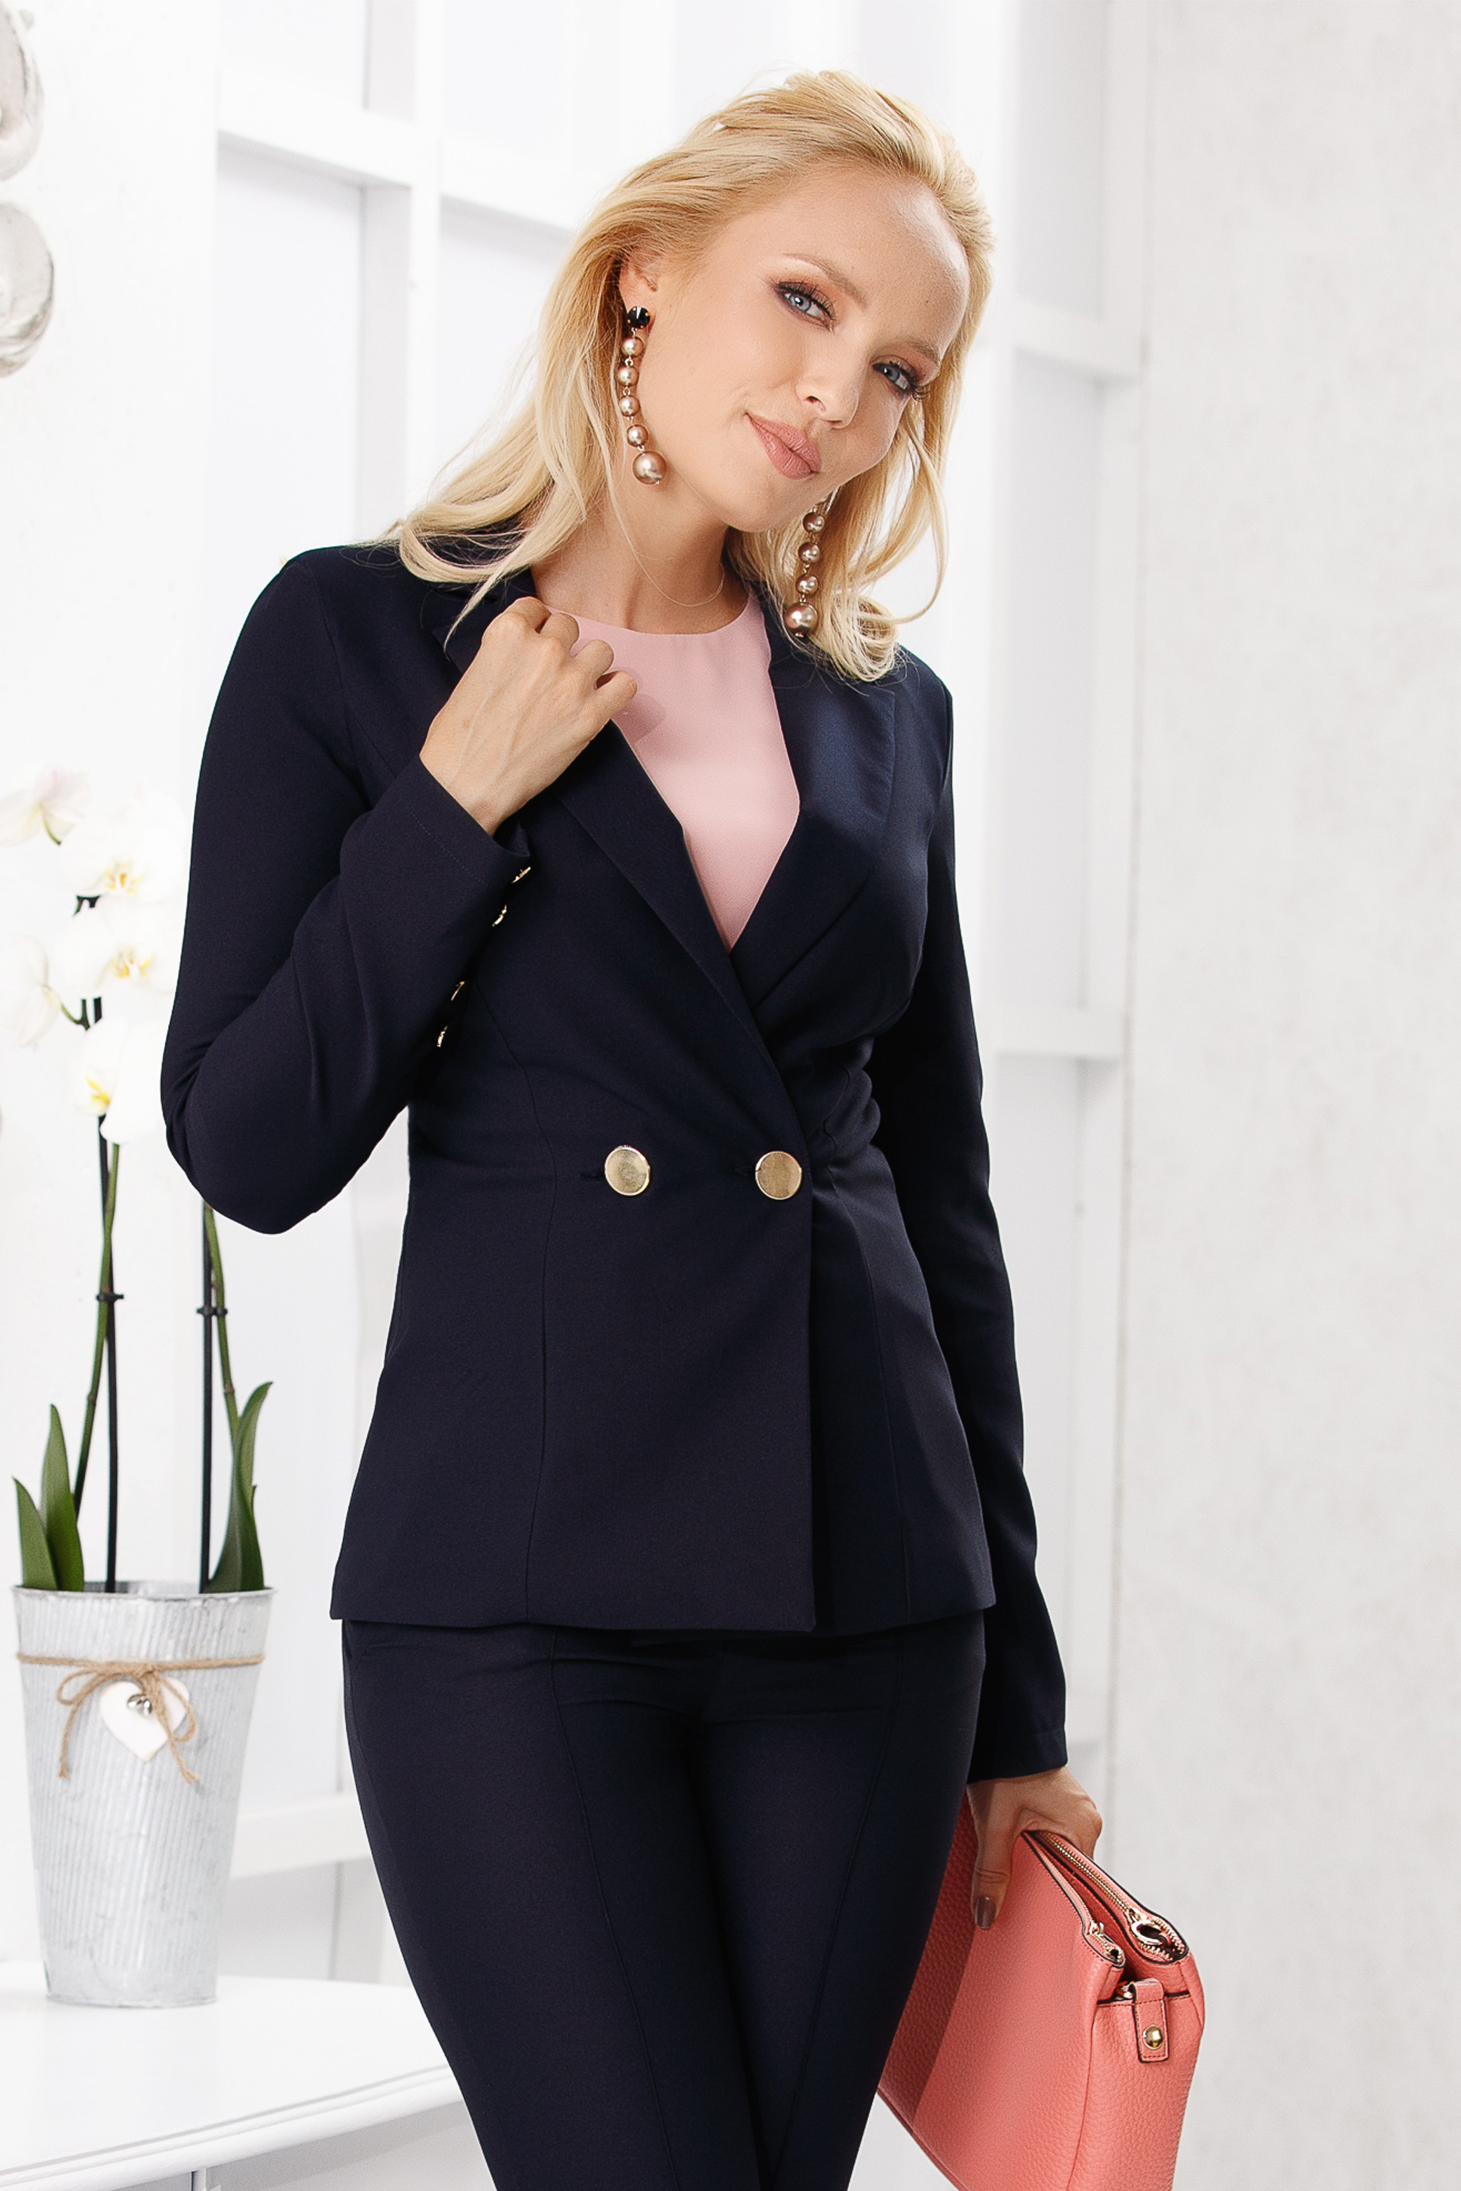 Darkblue jacket elegant short cut tented cloth with padded shoulders closure with gold buttons